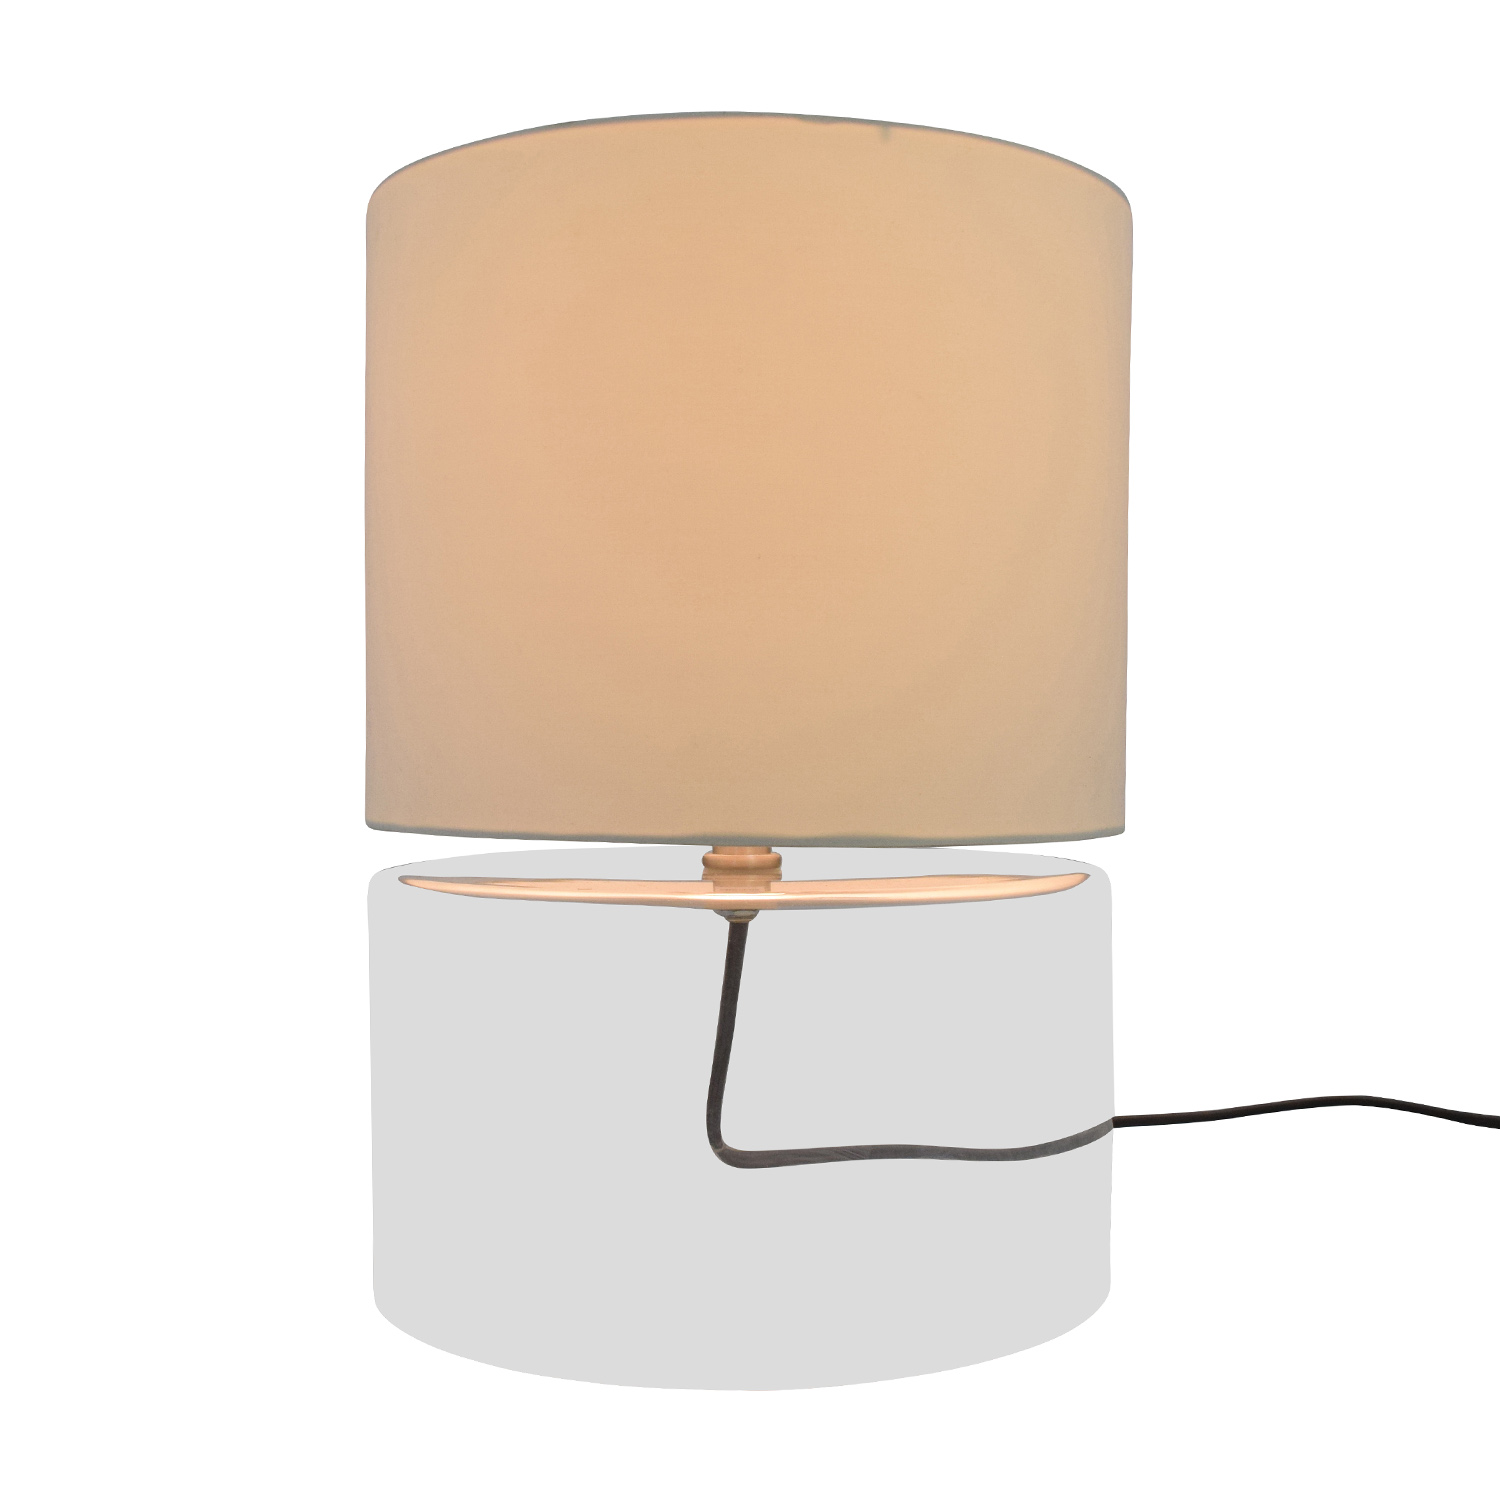 76% OFF - CB2 CB2 Clear Base Round Lamp / Decor